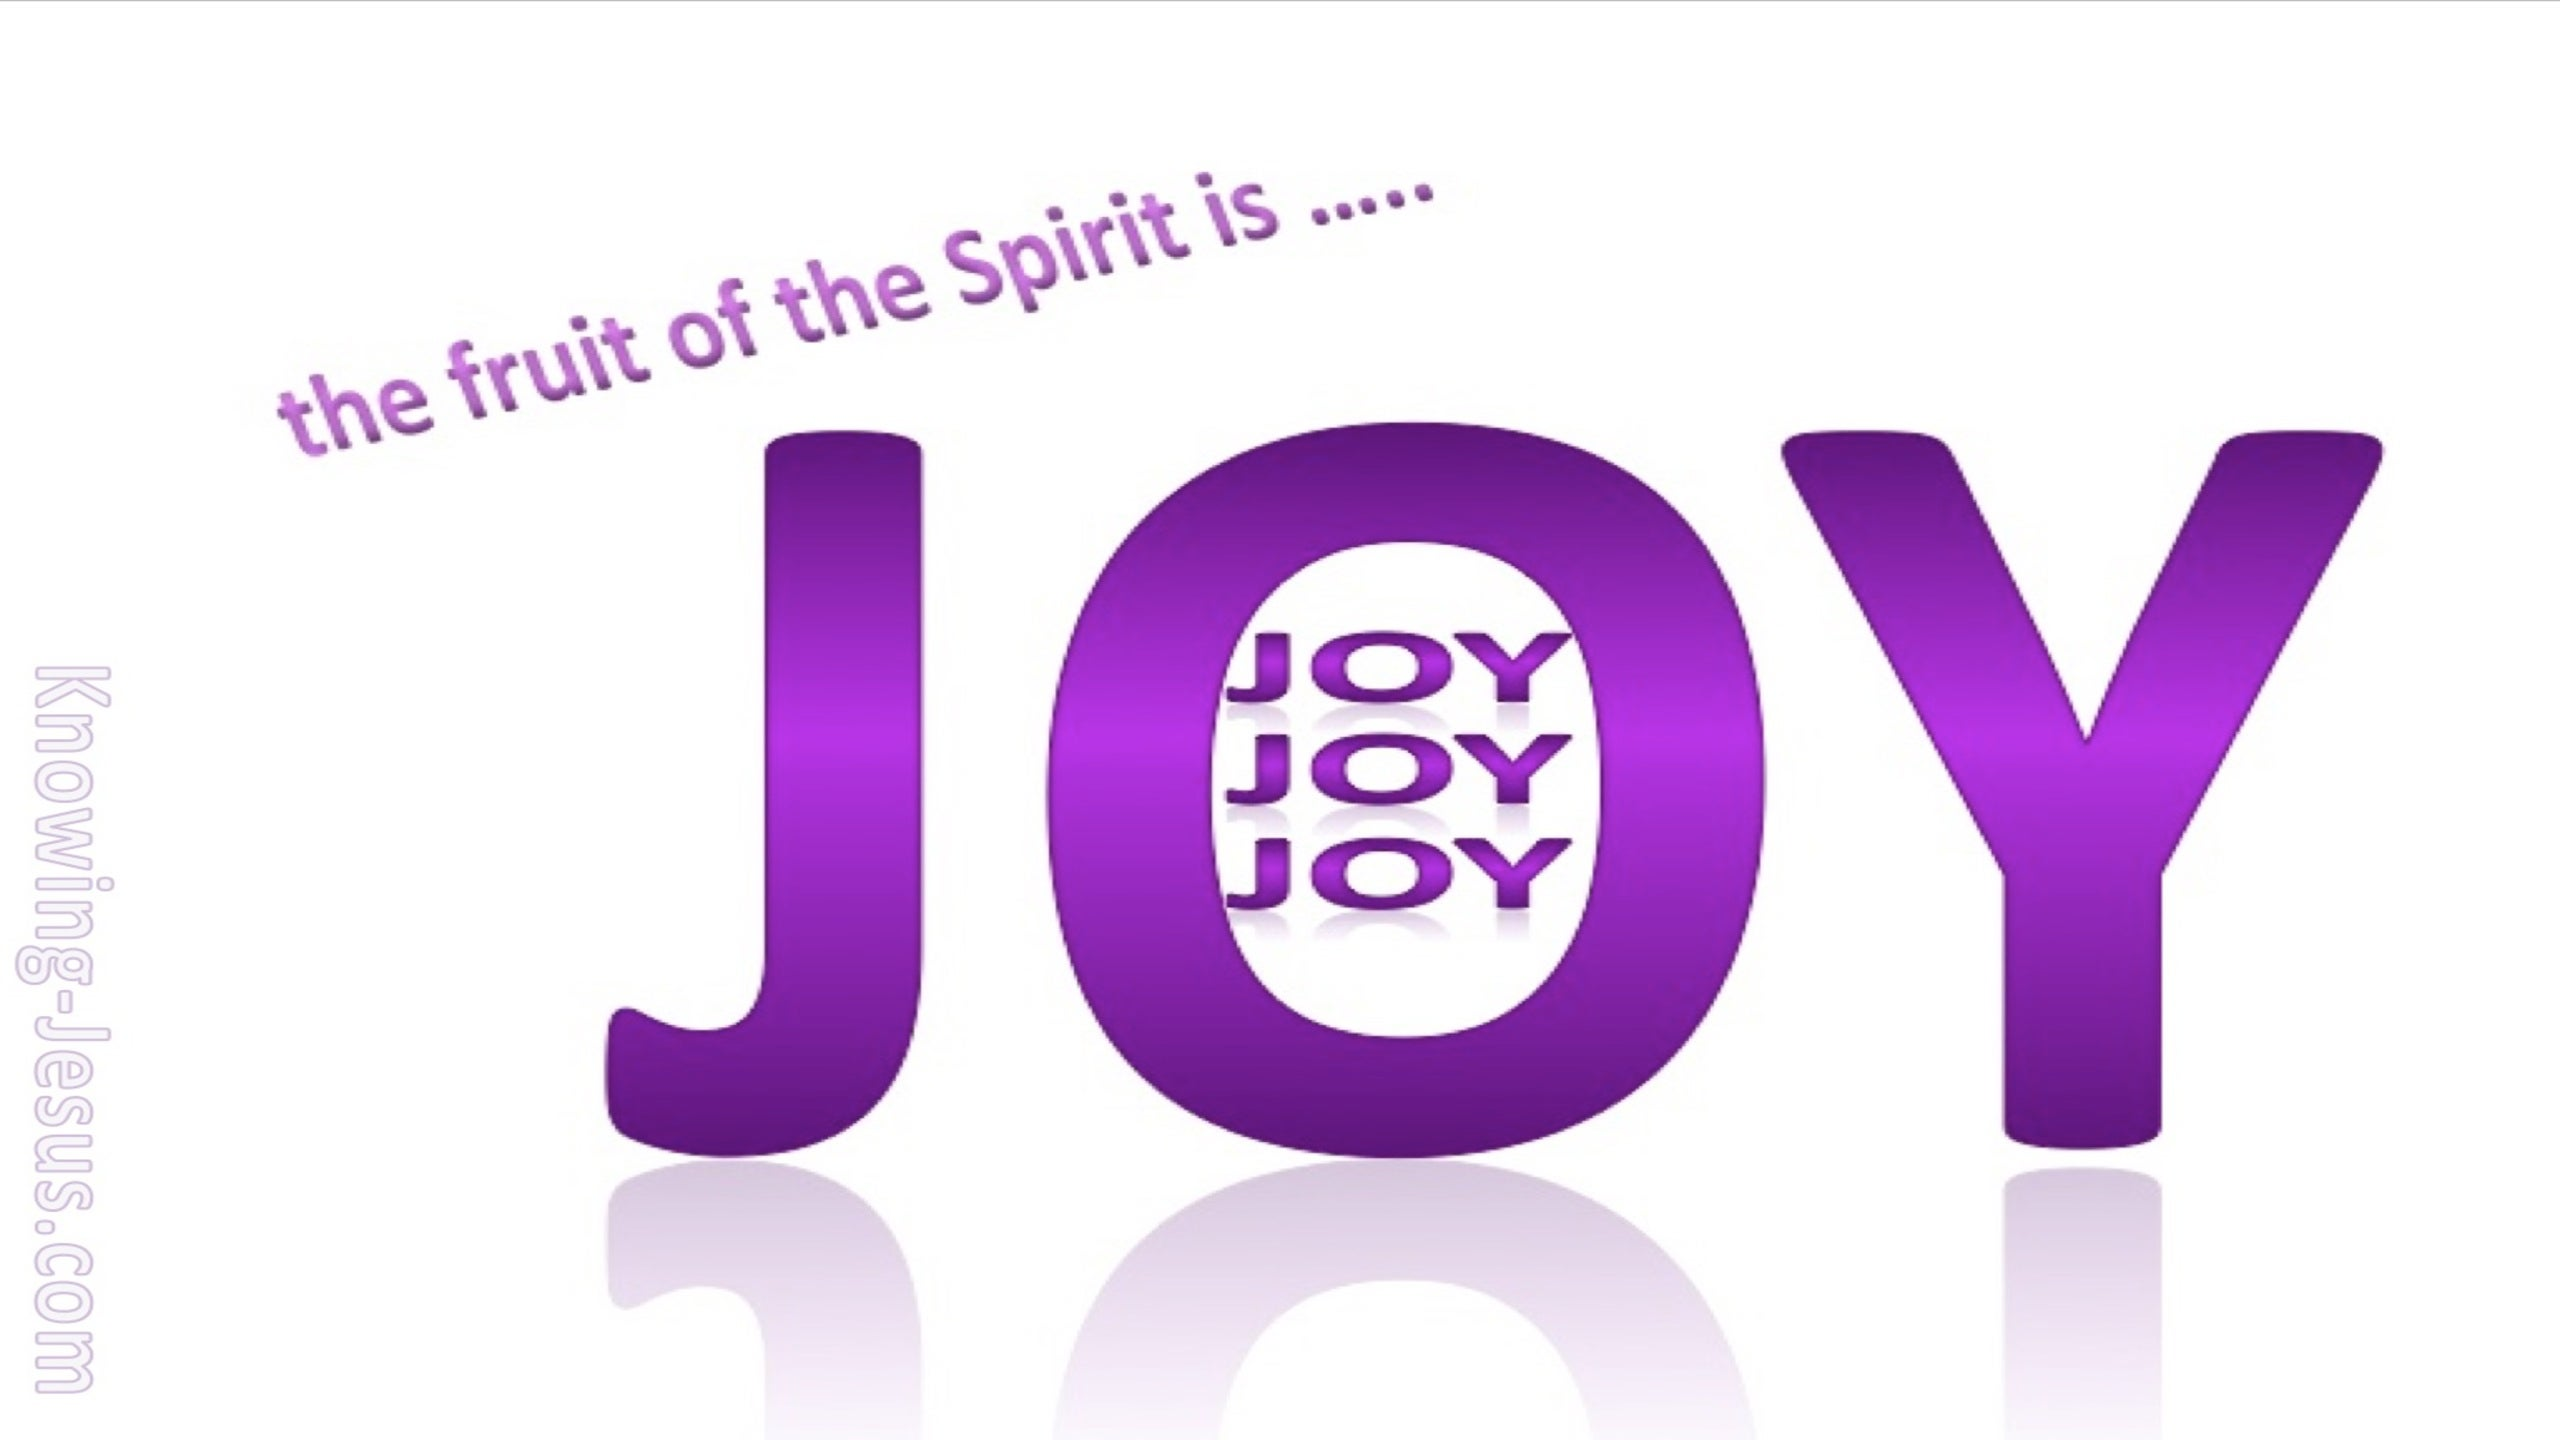 Galatians 5:22 Fruit Of The Spirit Is Joy (purple)